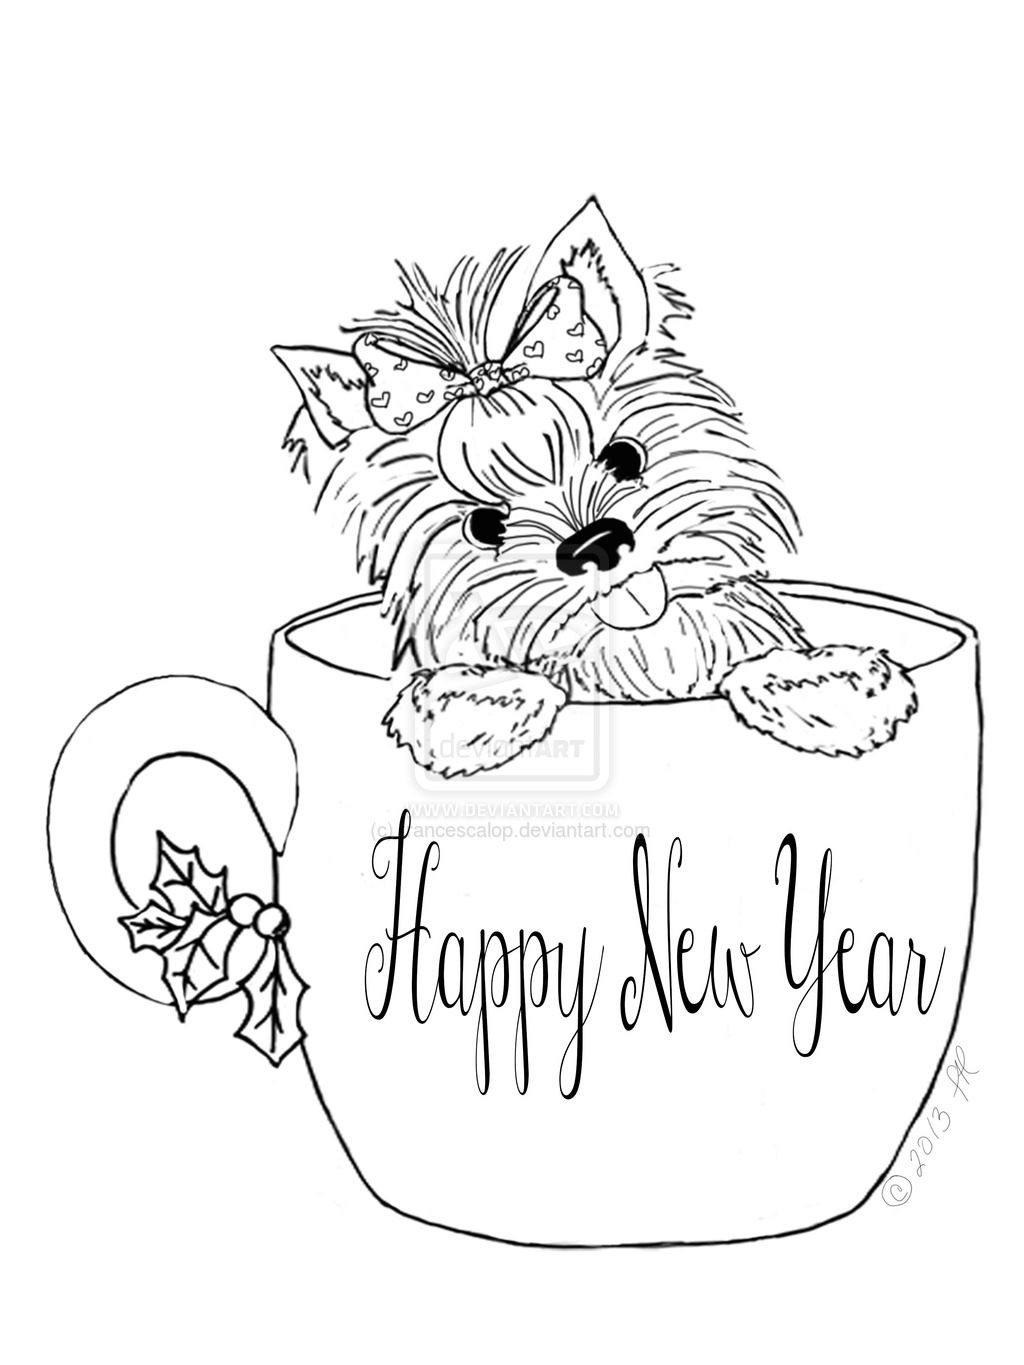 Teacup Puppy Coloring Pages.